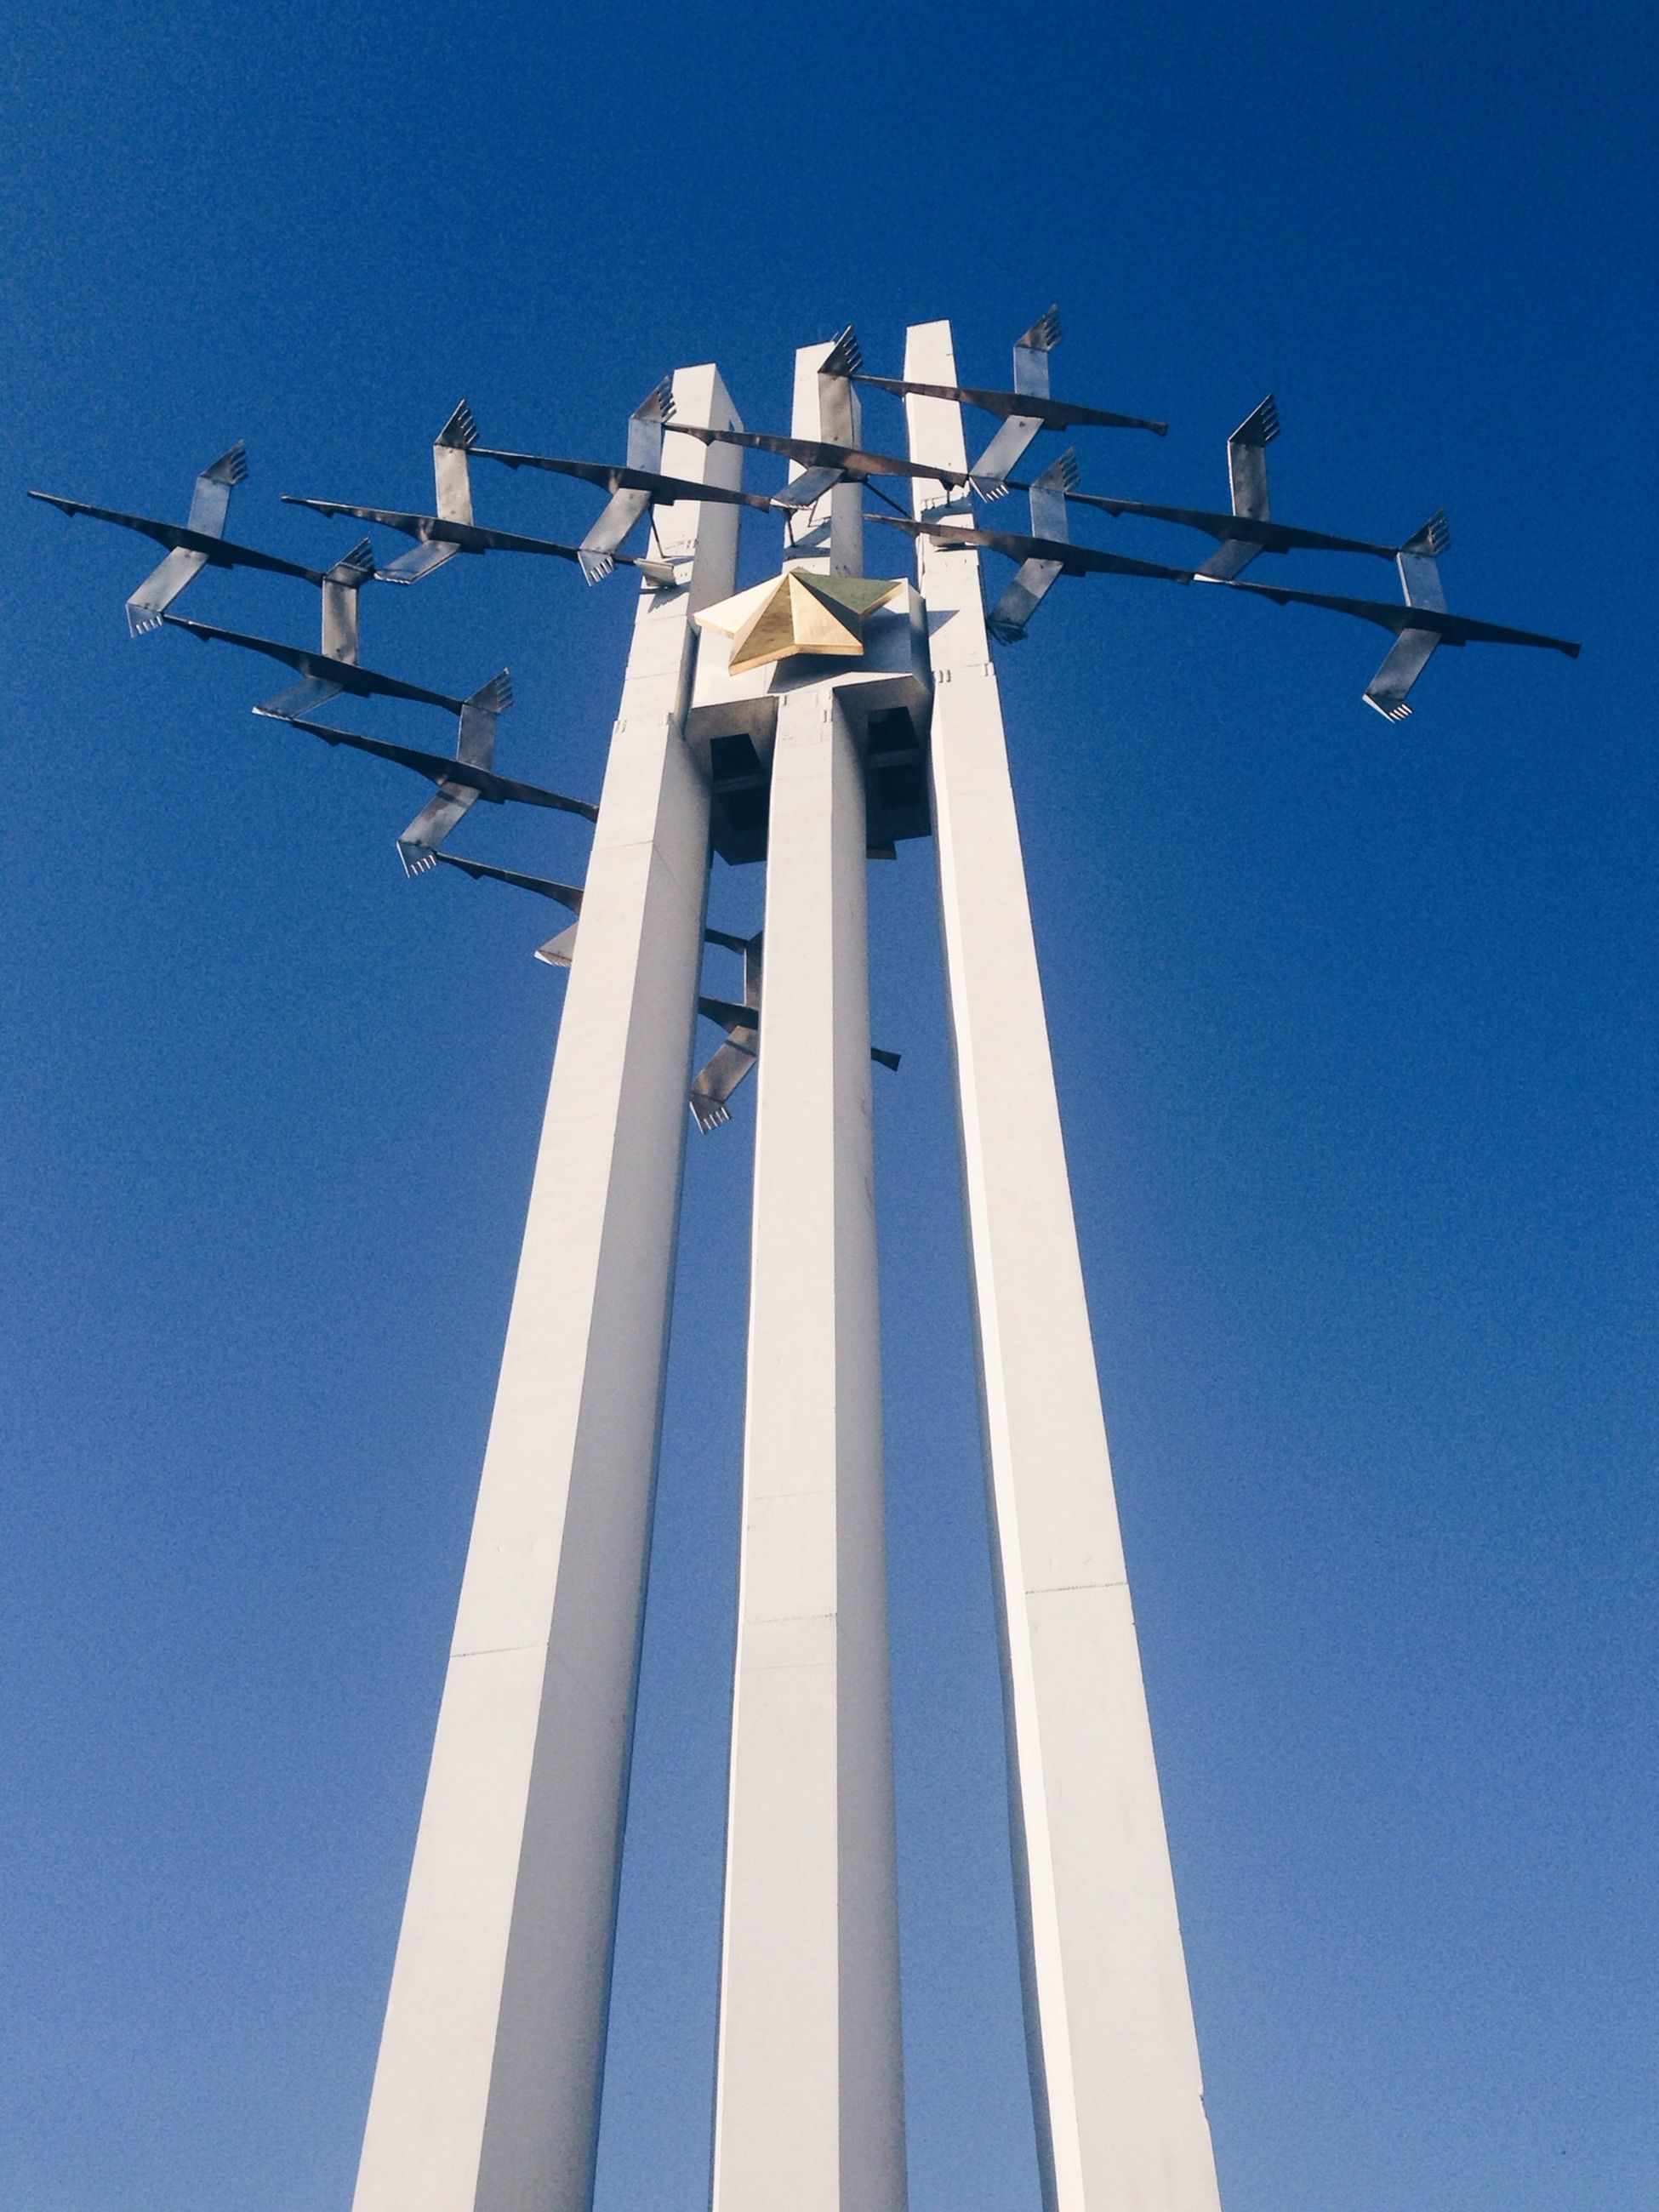 low angle view, blue, clear sky, day, pole, alternative energy, fuel and power generation, environmental conservation, in a row, sky, copy space, wind power, built structure, no people, outdoors, renewable energy, sunlight, wind turbine, cross, religion